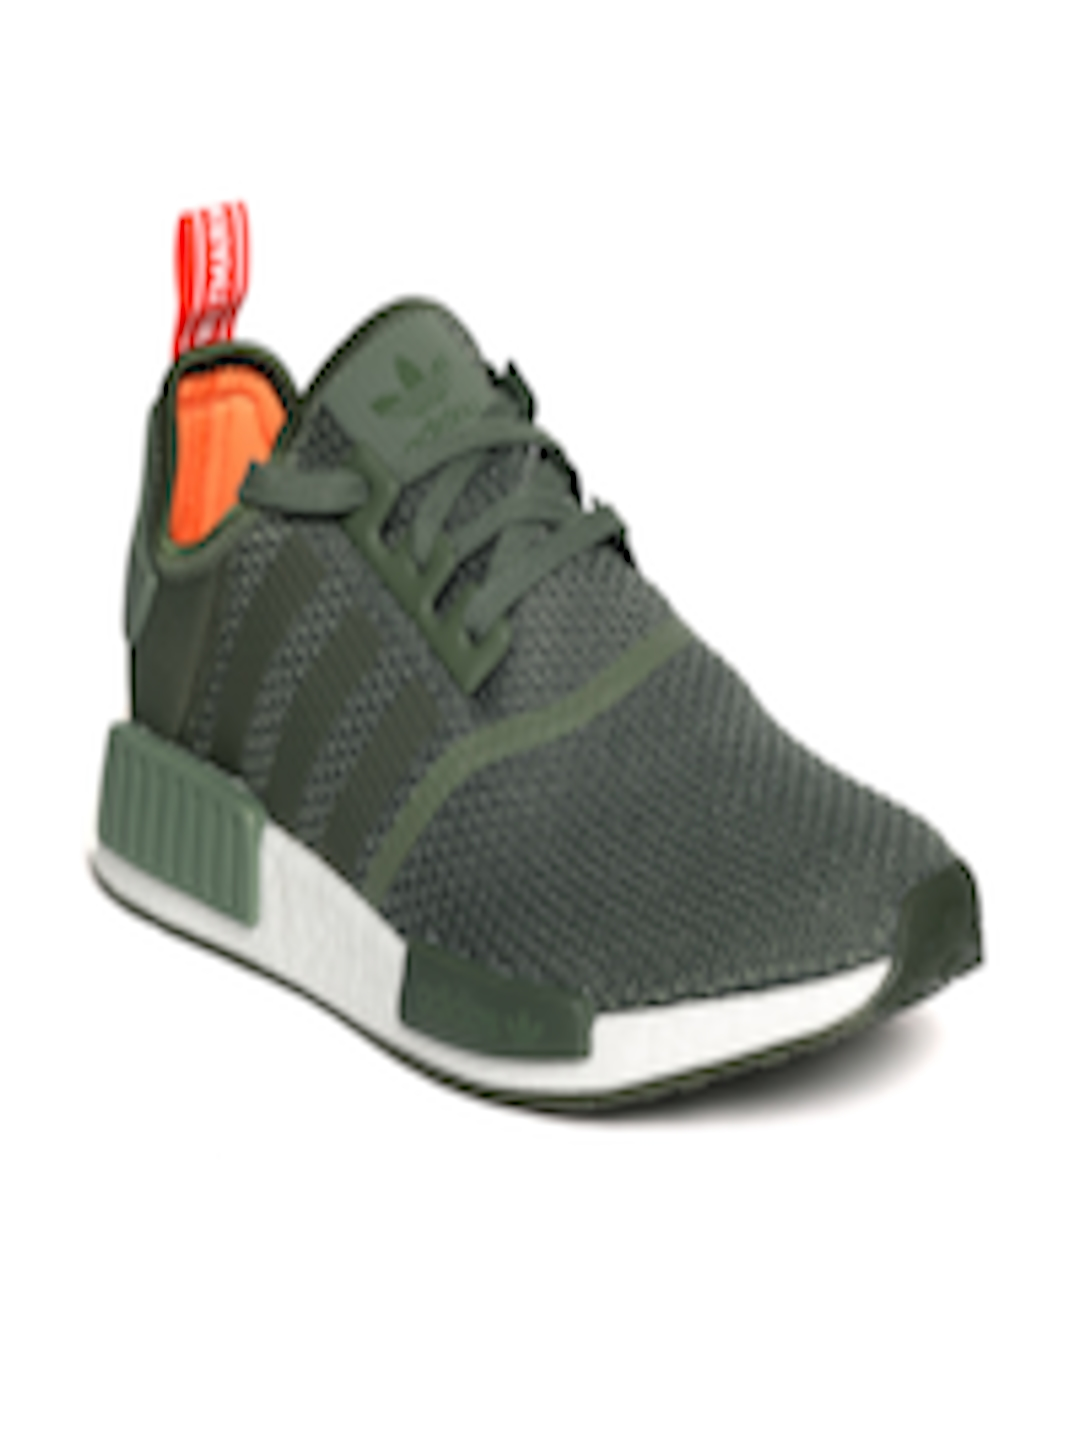 6ca9da72f Buy ADIDAS Originals Men Olive Green NMD R1 Casual Shoes - Casual Shoes for  Men 6842544